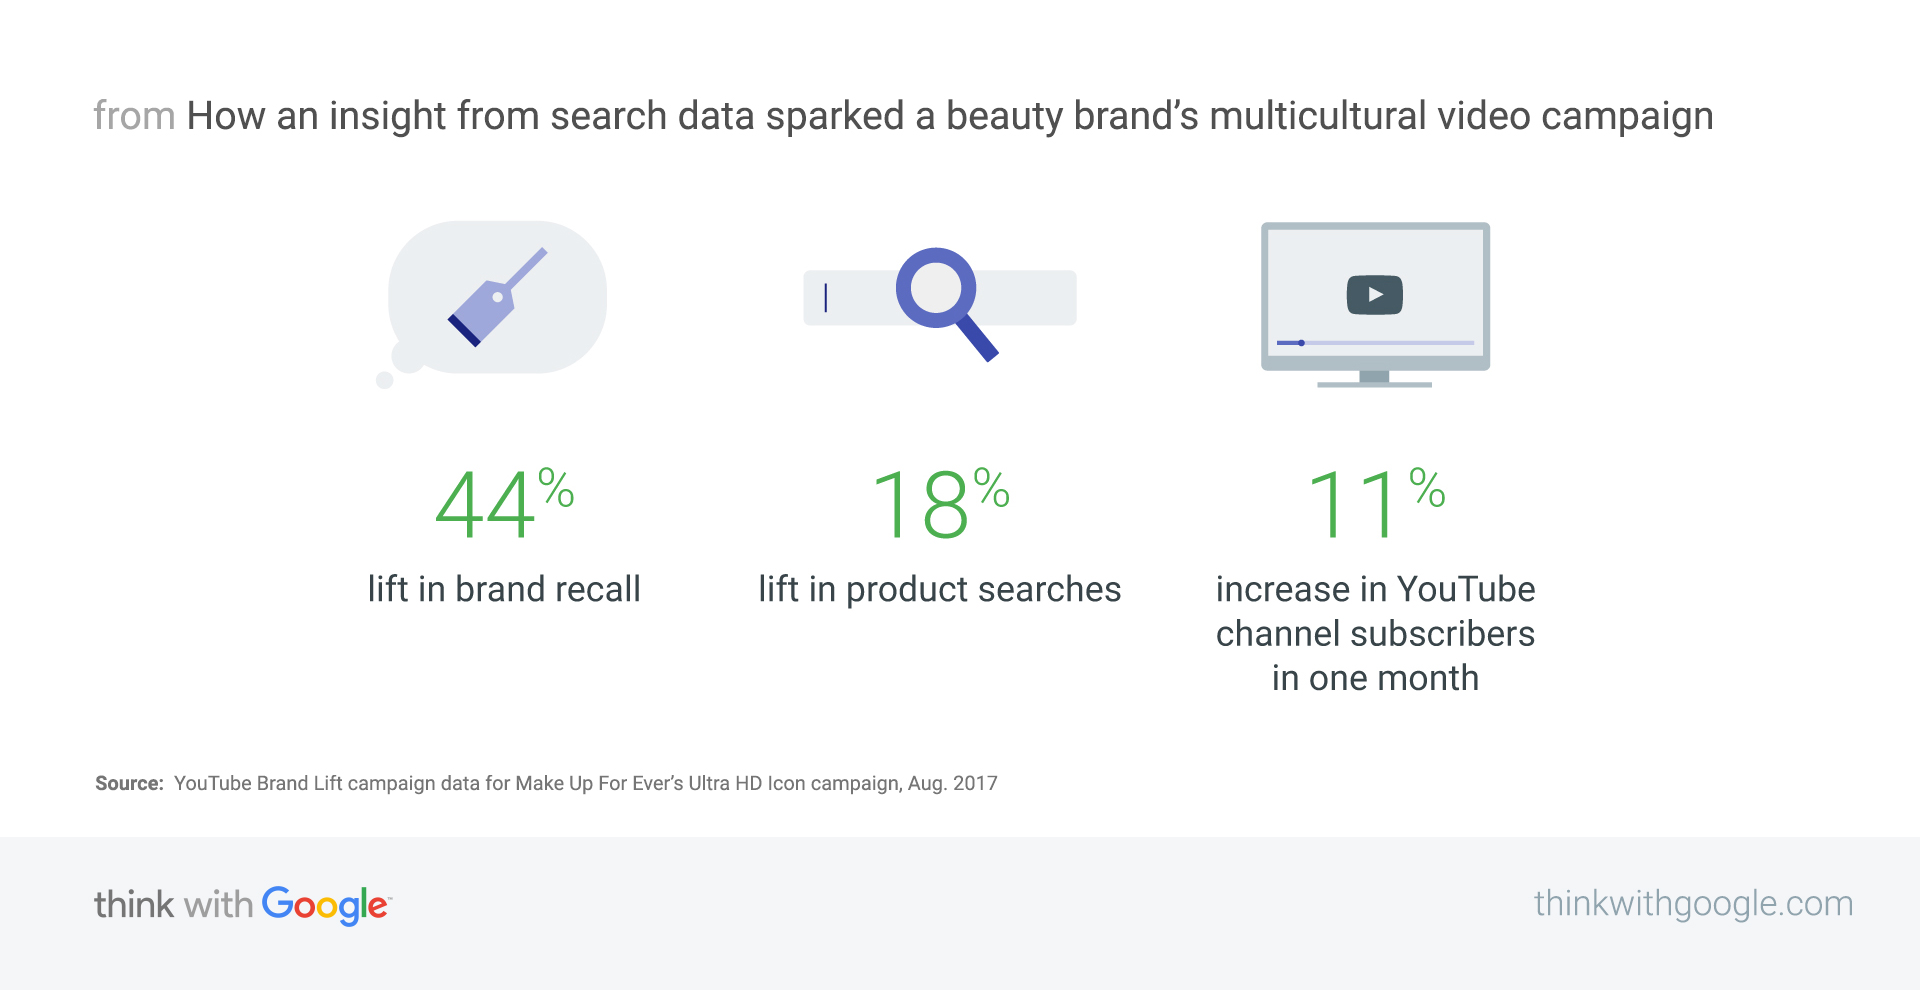 How Make Up Forever built a brand campaign from a search insight